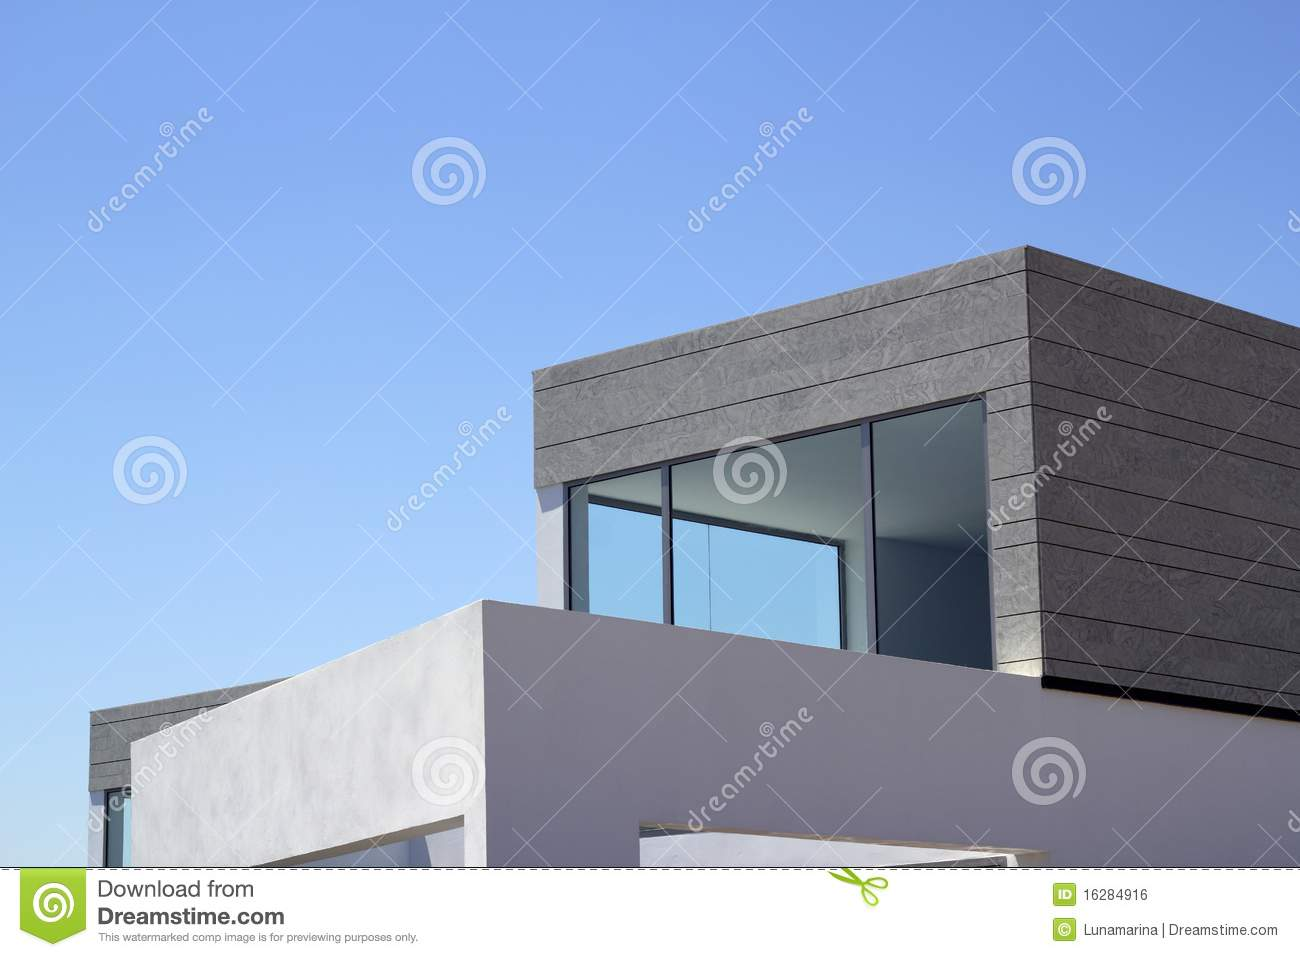 Architecture modern houses crop details royalty free stock for Modern house details